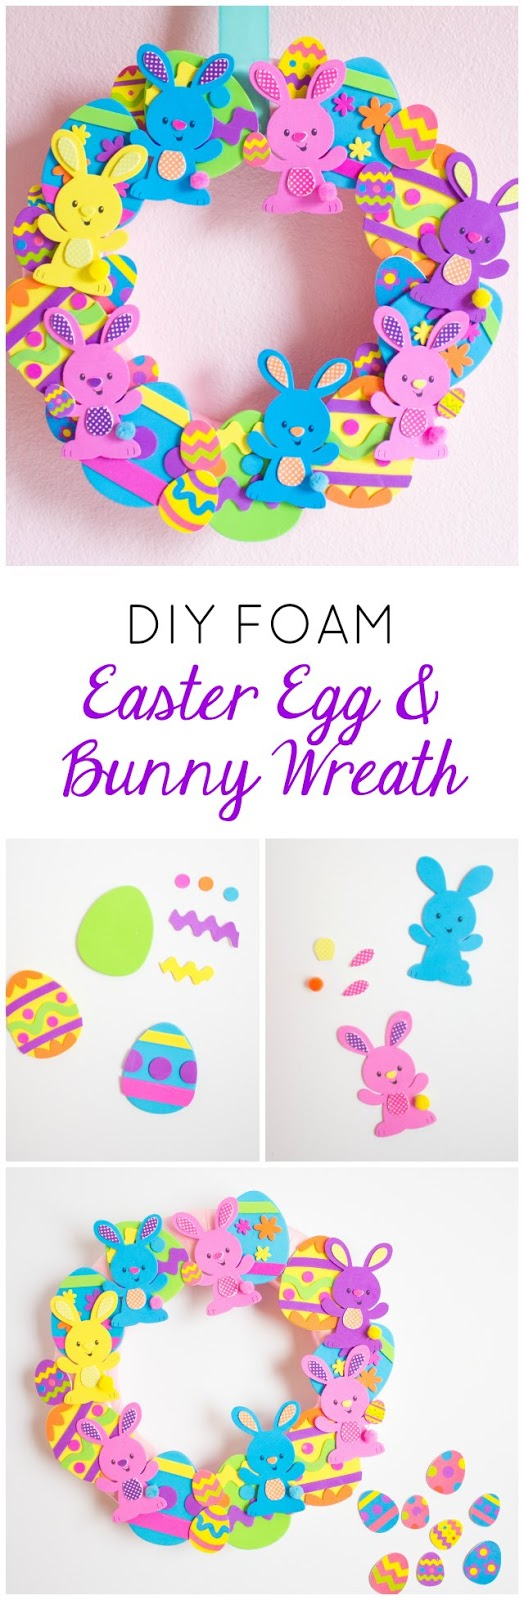 Make this sweet Easter egg and bunny wreath in minutes with foam craft kits!